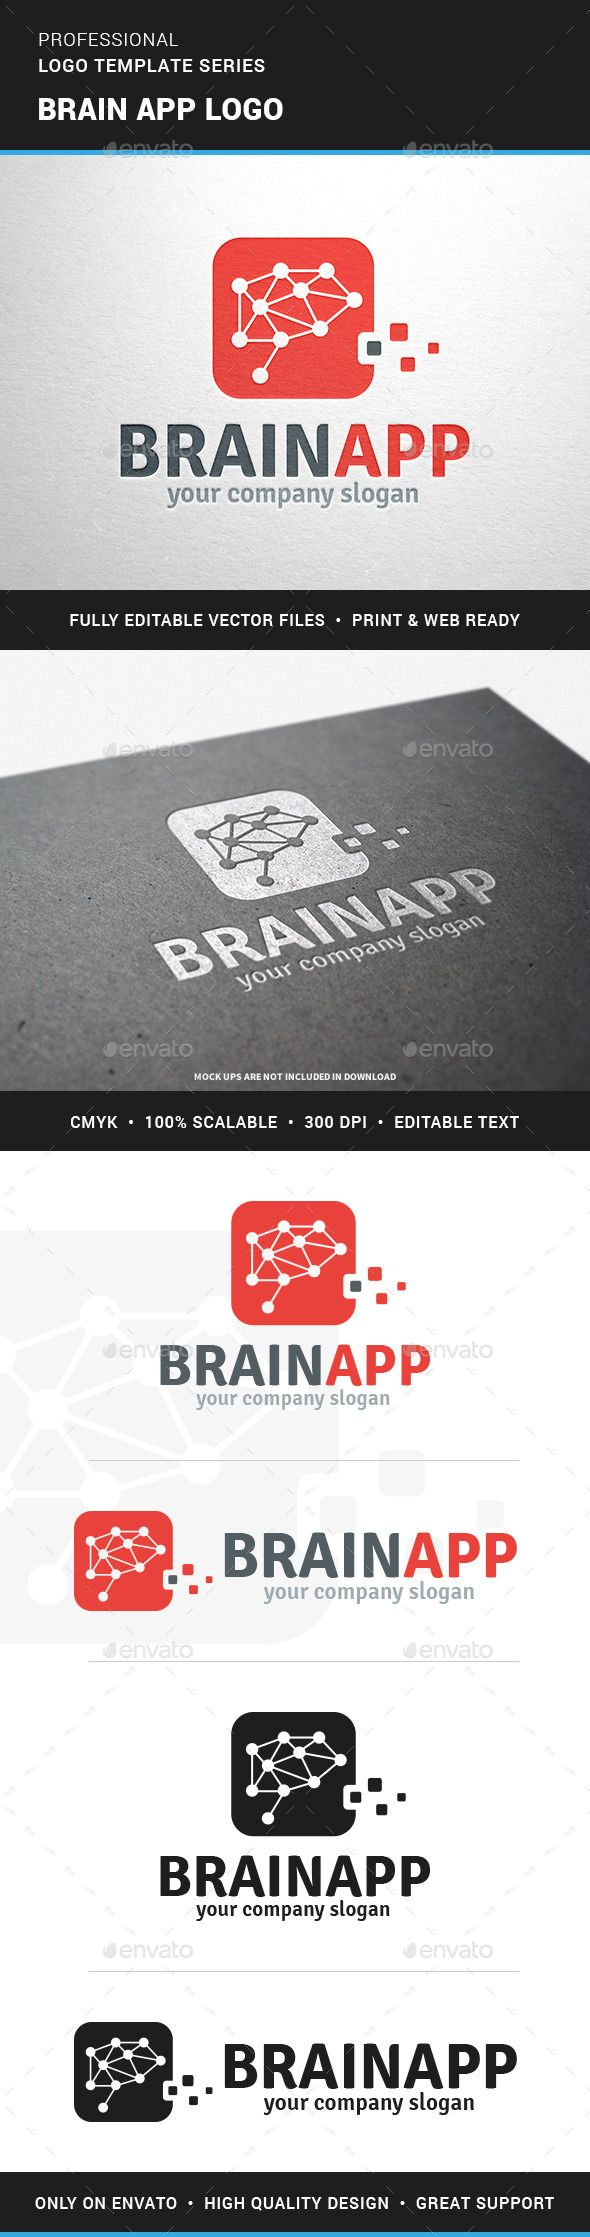 Brain App Logo Template — Photoshop PSD #games #training • Available here → https://graphicriver.net/item/brain-app-logo-template/12776505?ref=pxcr